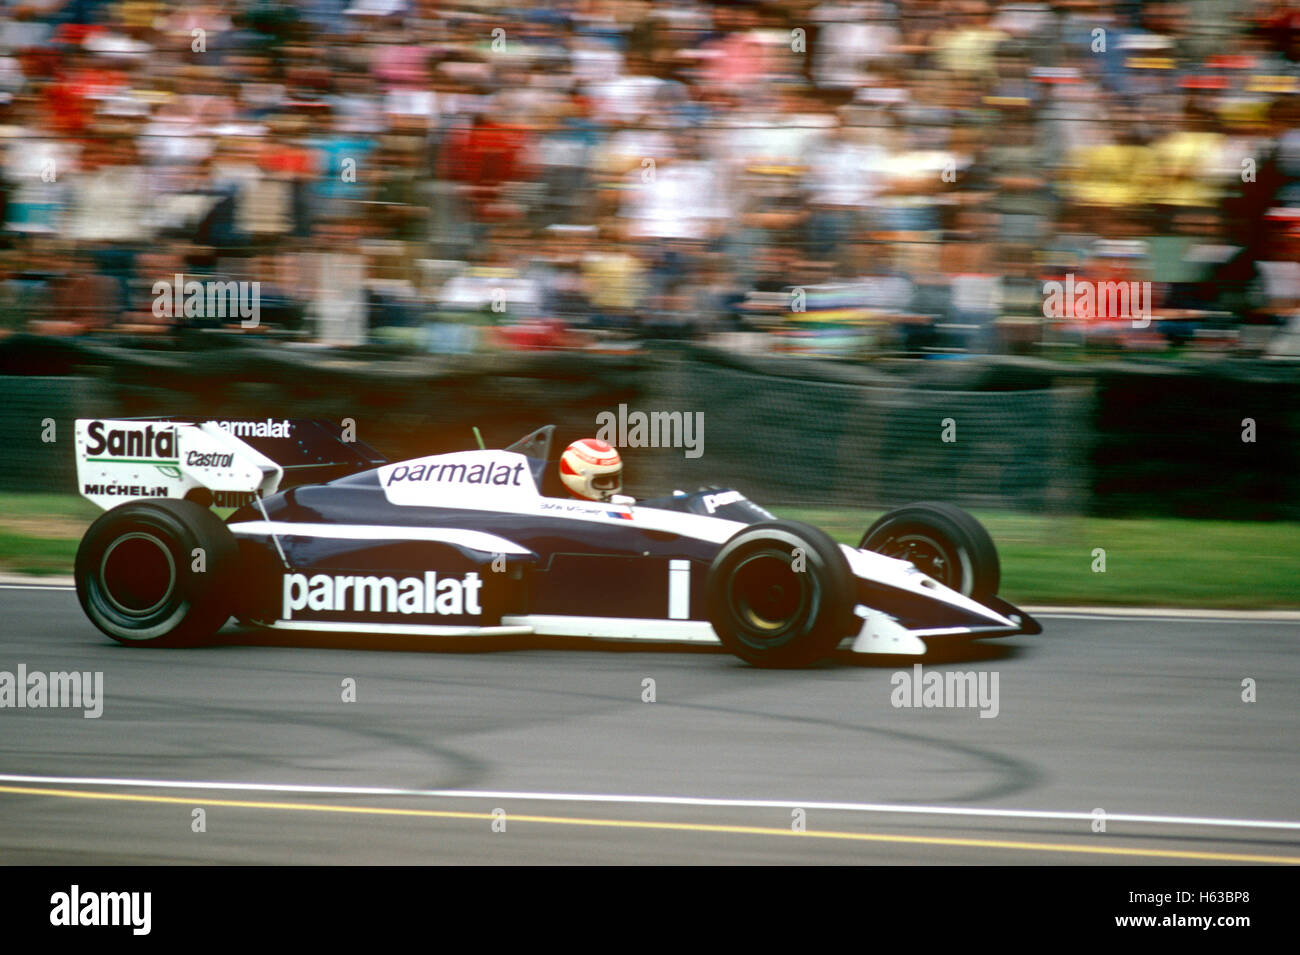 Nelson Piquet driving a Brabham BT53 BMW racing car in 1984 - Stock Image